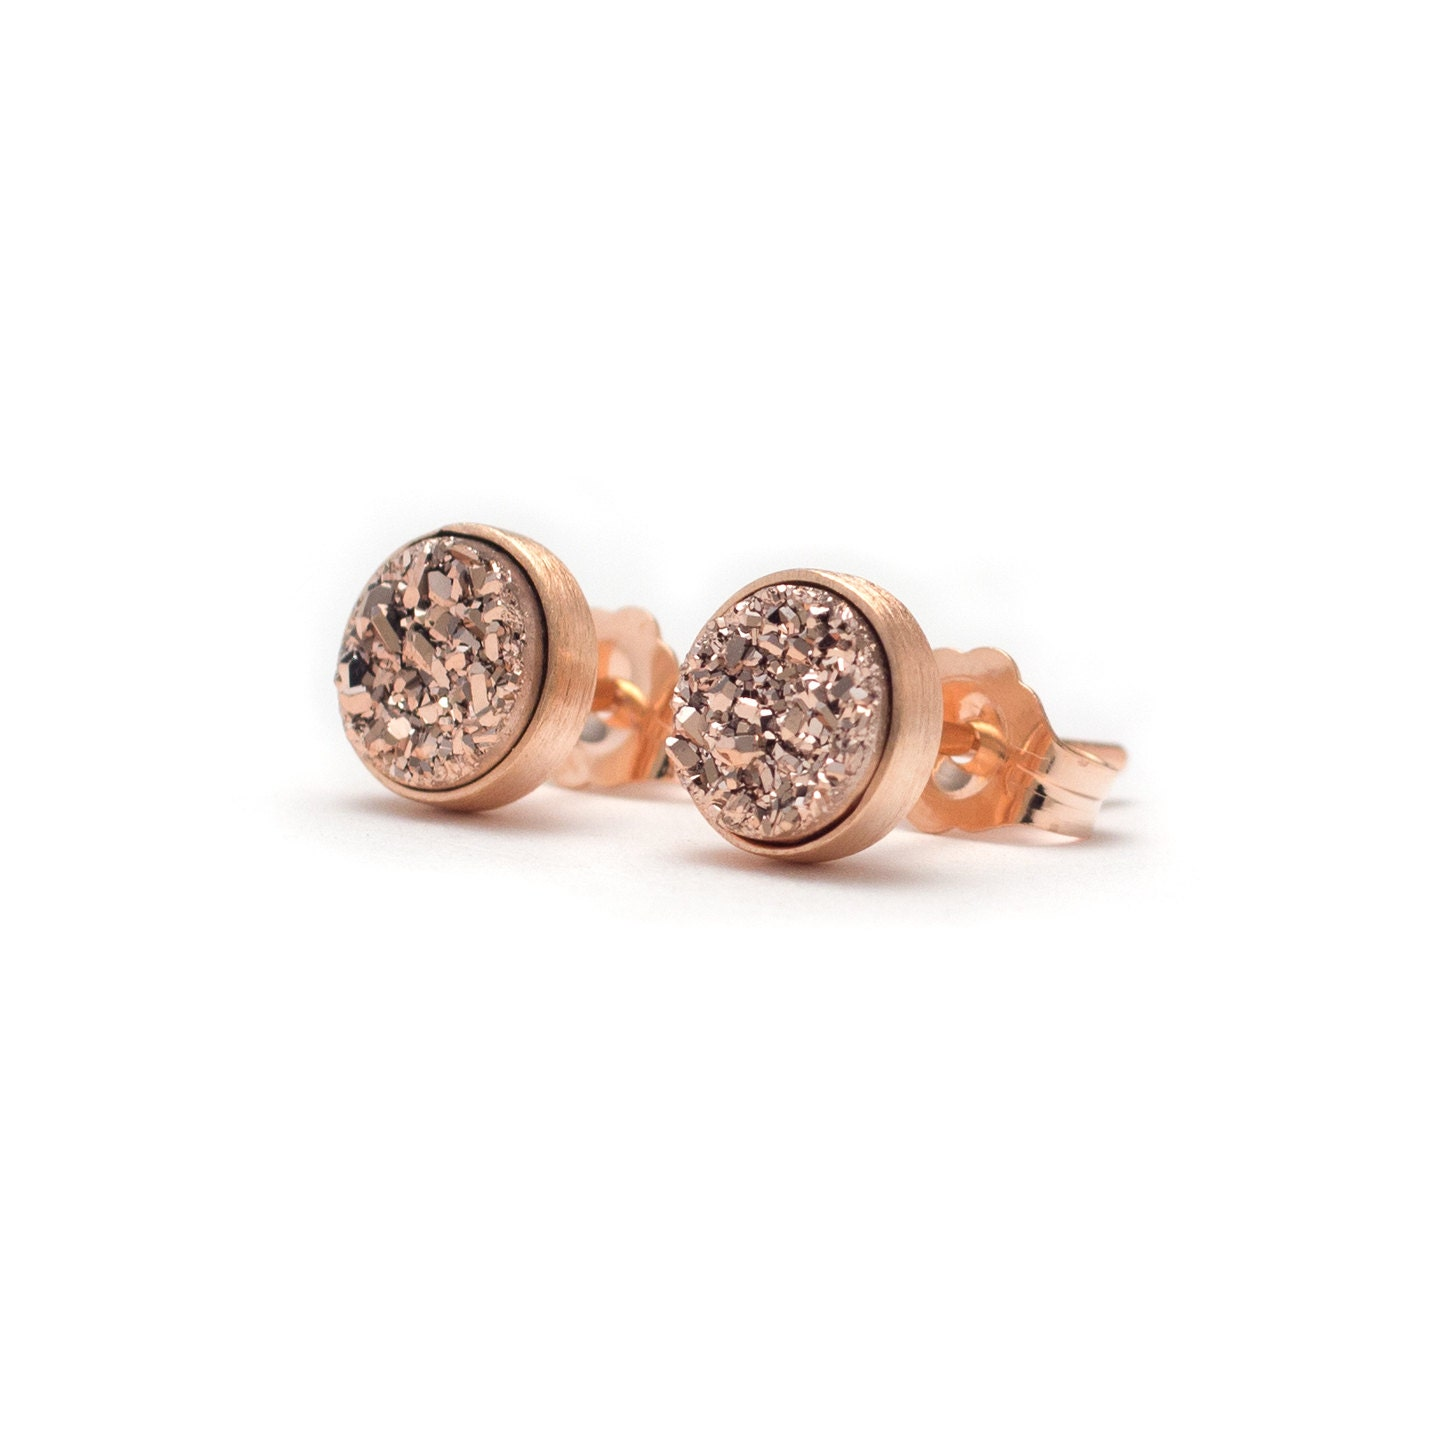 Rose Gold in Rose Gold Stud Earrings Druzy / Drusy Quartz